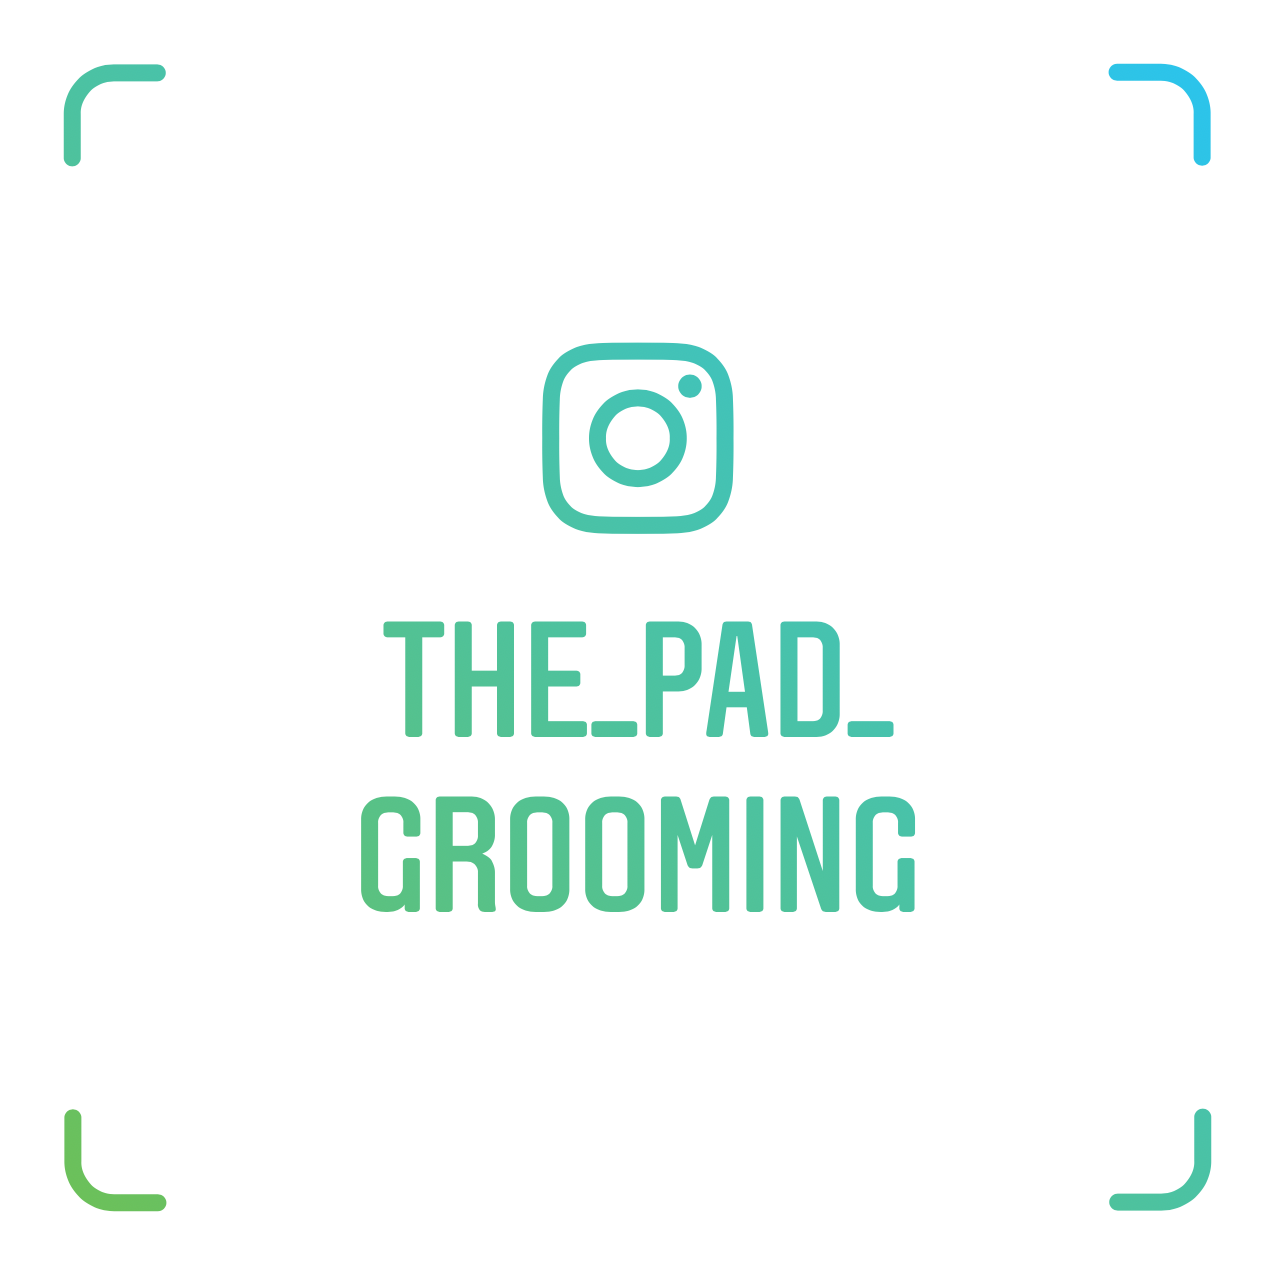 the_pad_grooming_nametag-2.png